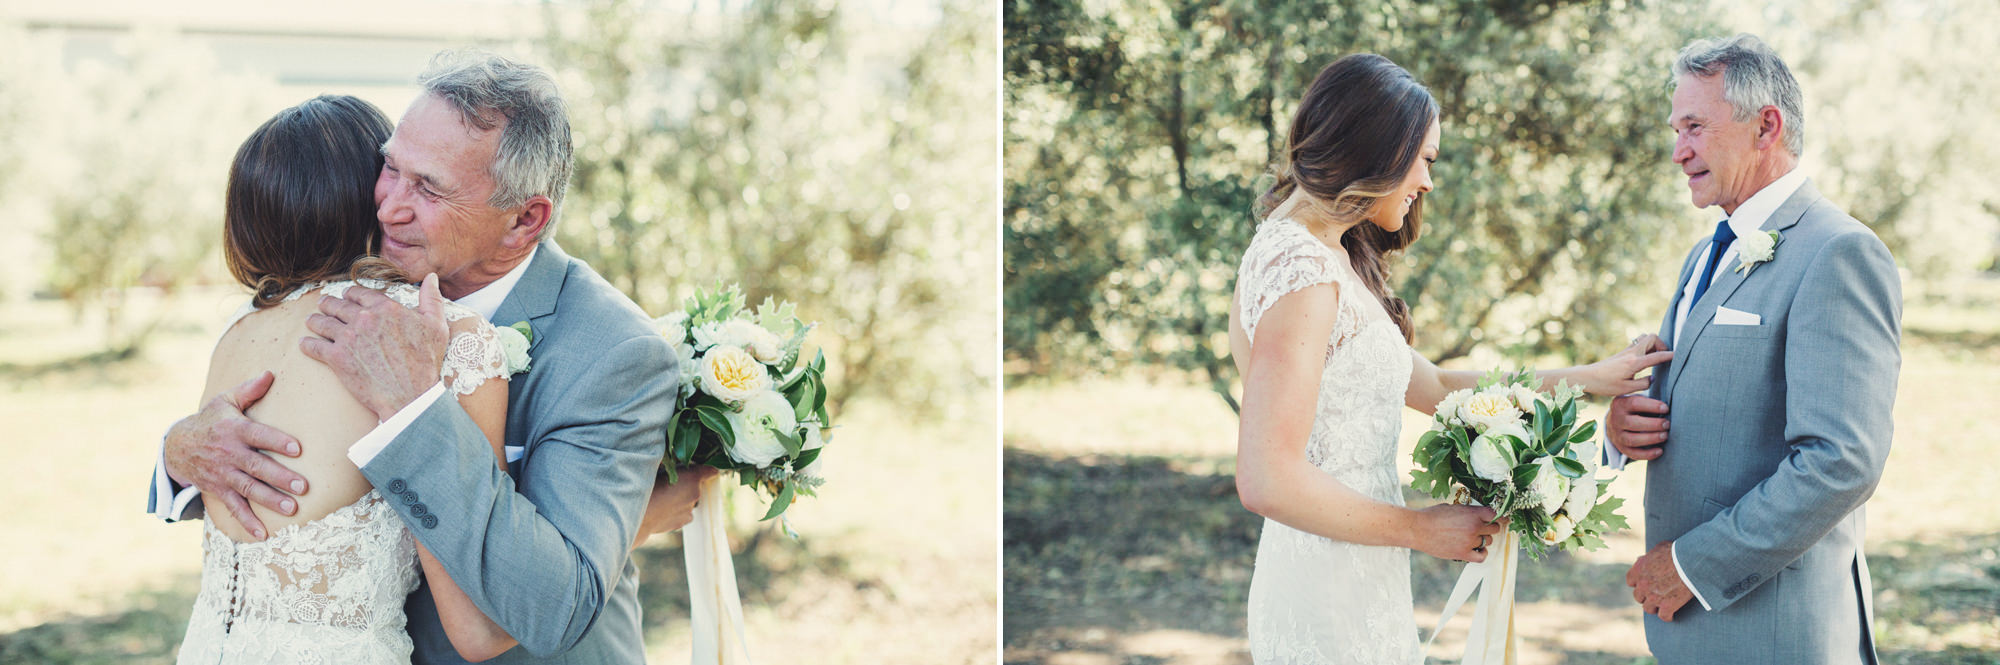 Wedding in Campovida @Anne-Claire Brun 36